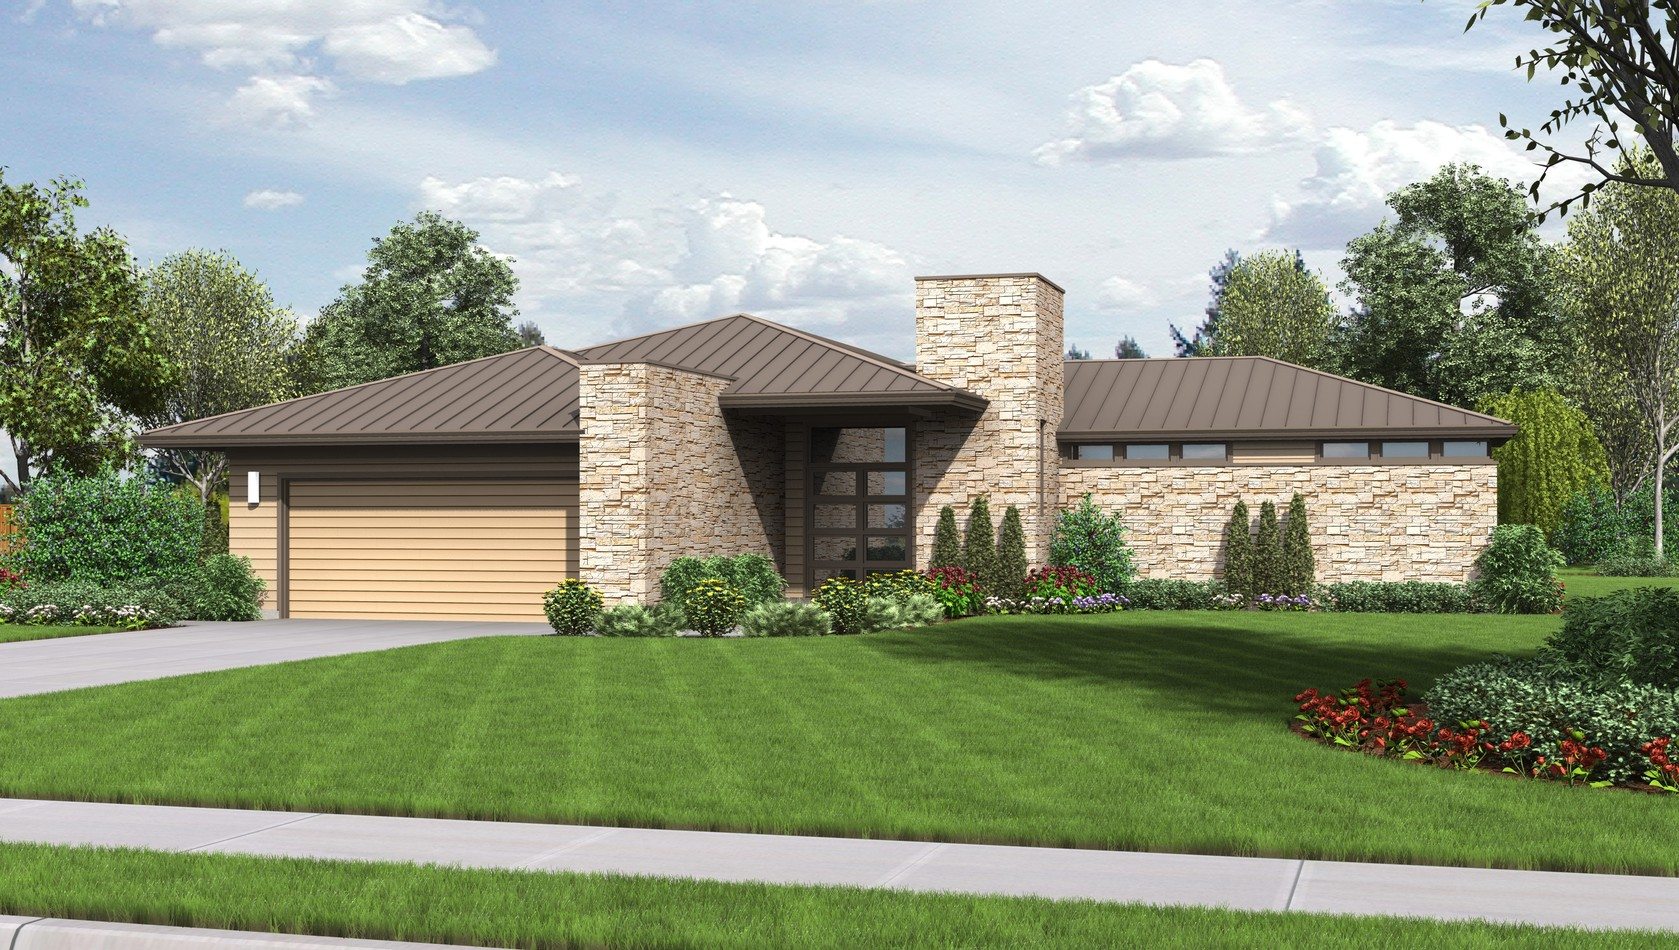 Main image for house plan 1246: The Houston